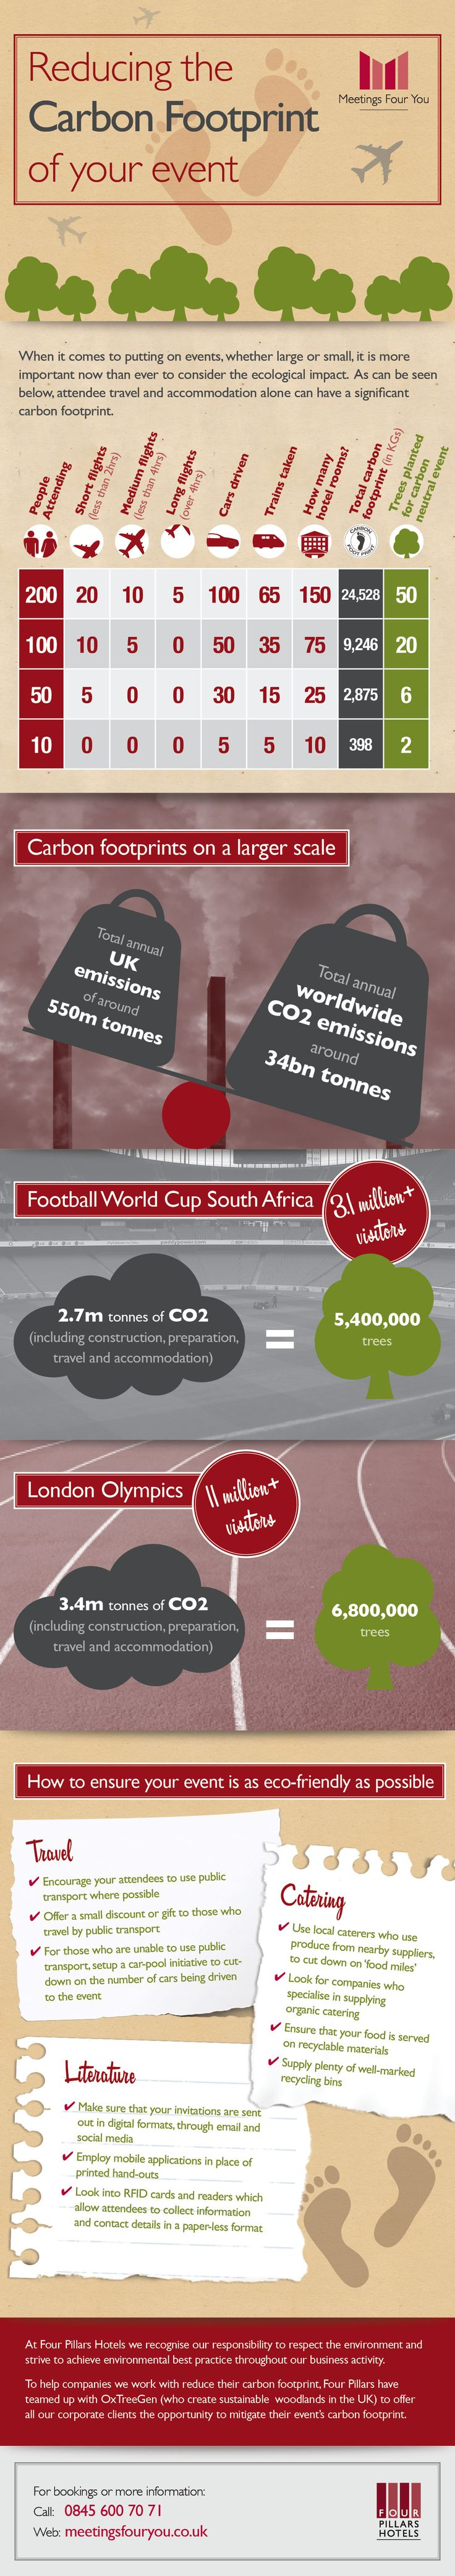 Infographic: Reducing the Carbon Footprint of Your Event - Ways2GoGreen Blog